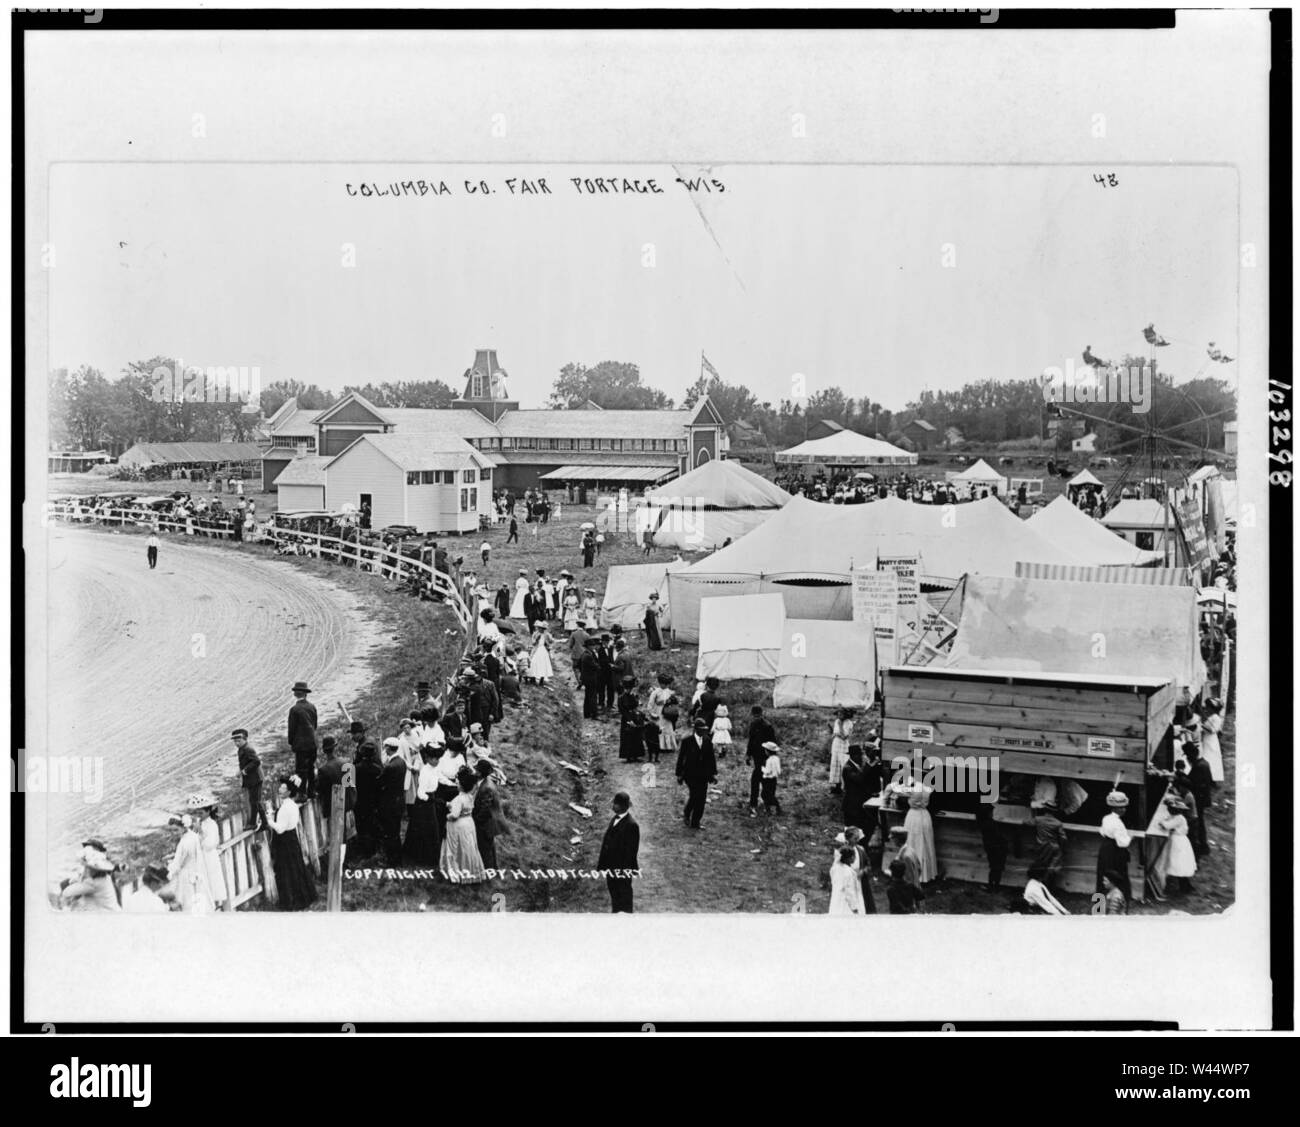 Columbia Co. Fair, Portage, Wis. - Stock Image